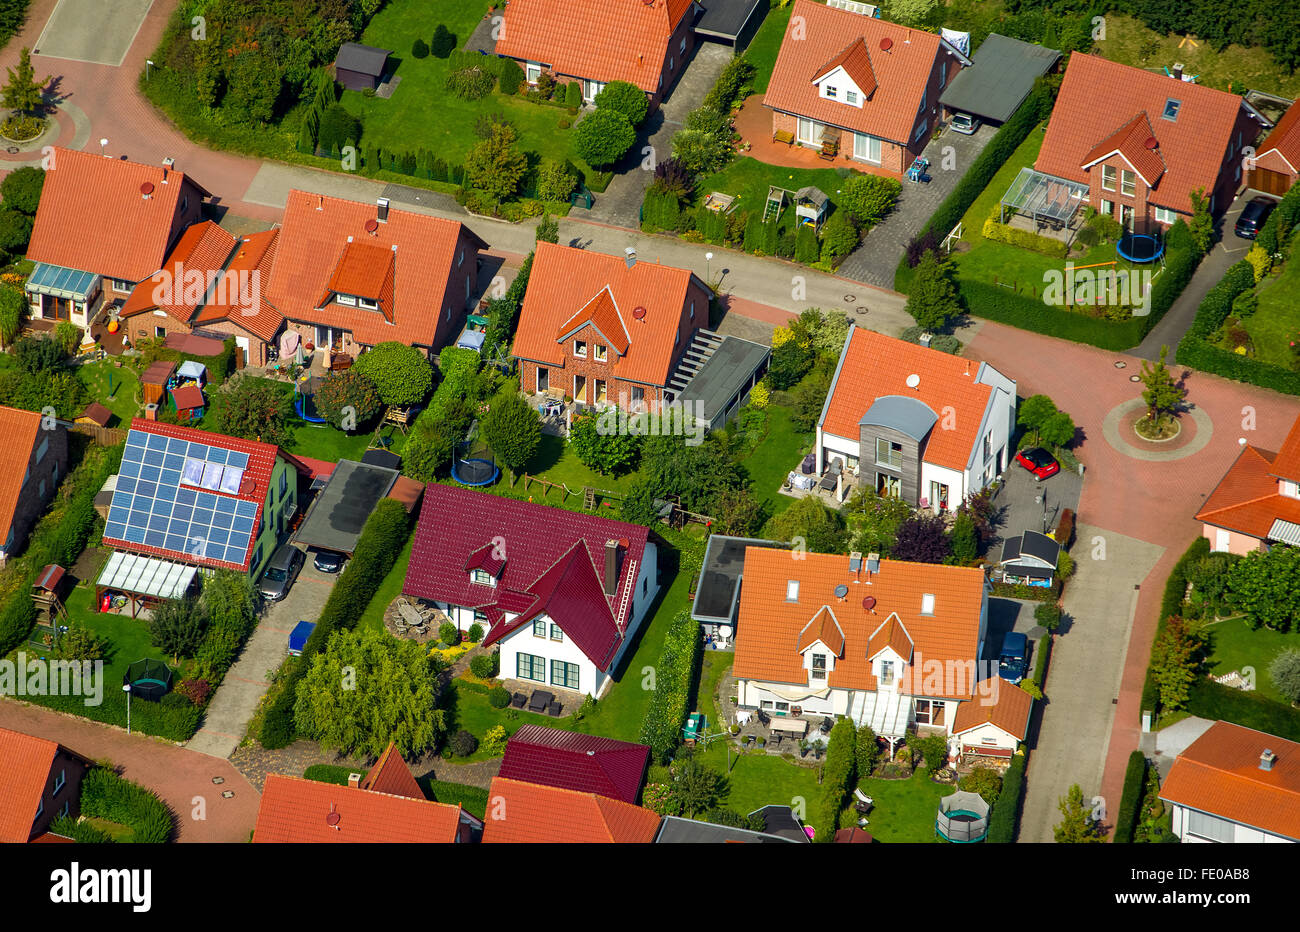 Aerial view, housing estate, brick buildings with red tile roofs, houses and semi-detached houses, gardens, Billerbeck, - Stock Image